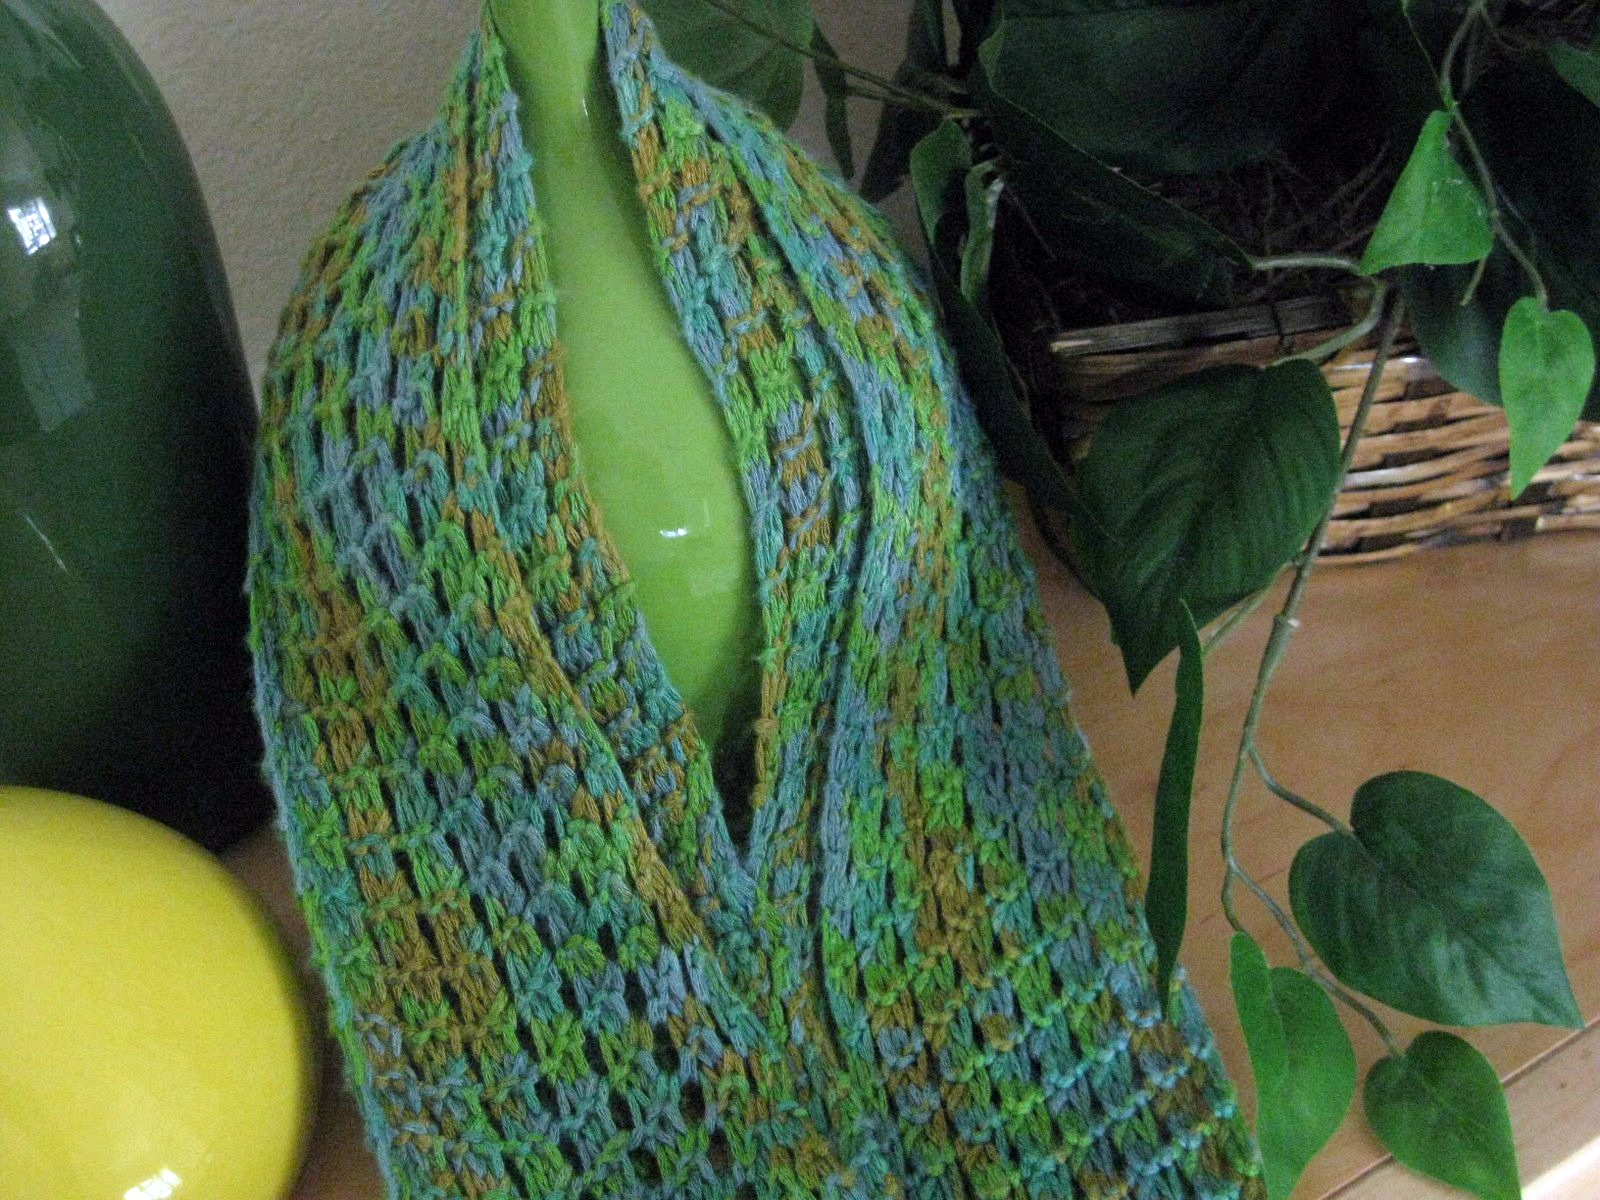 Knitting Pattern Of Scarf : golden bird knits: Mesh bamboo scarf knitting pattern